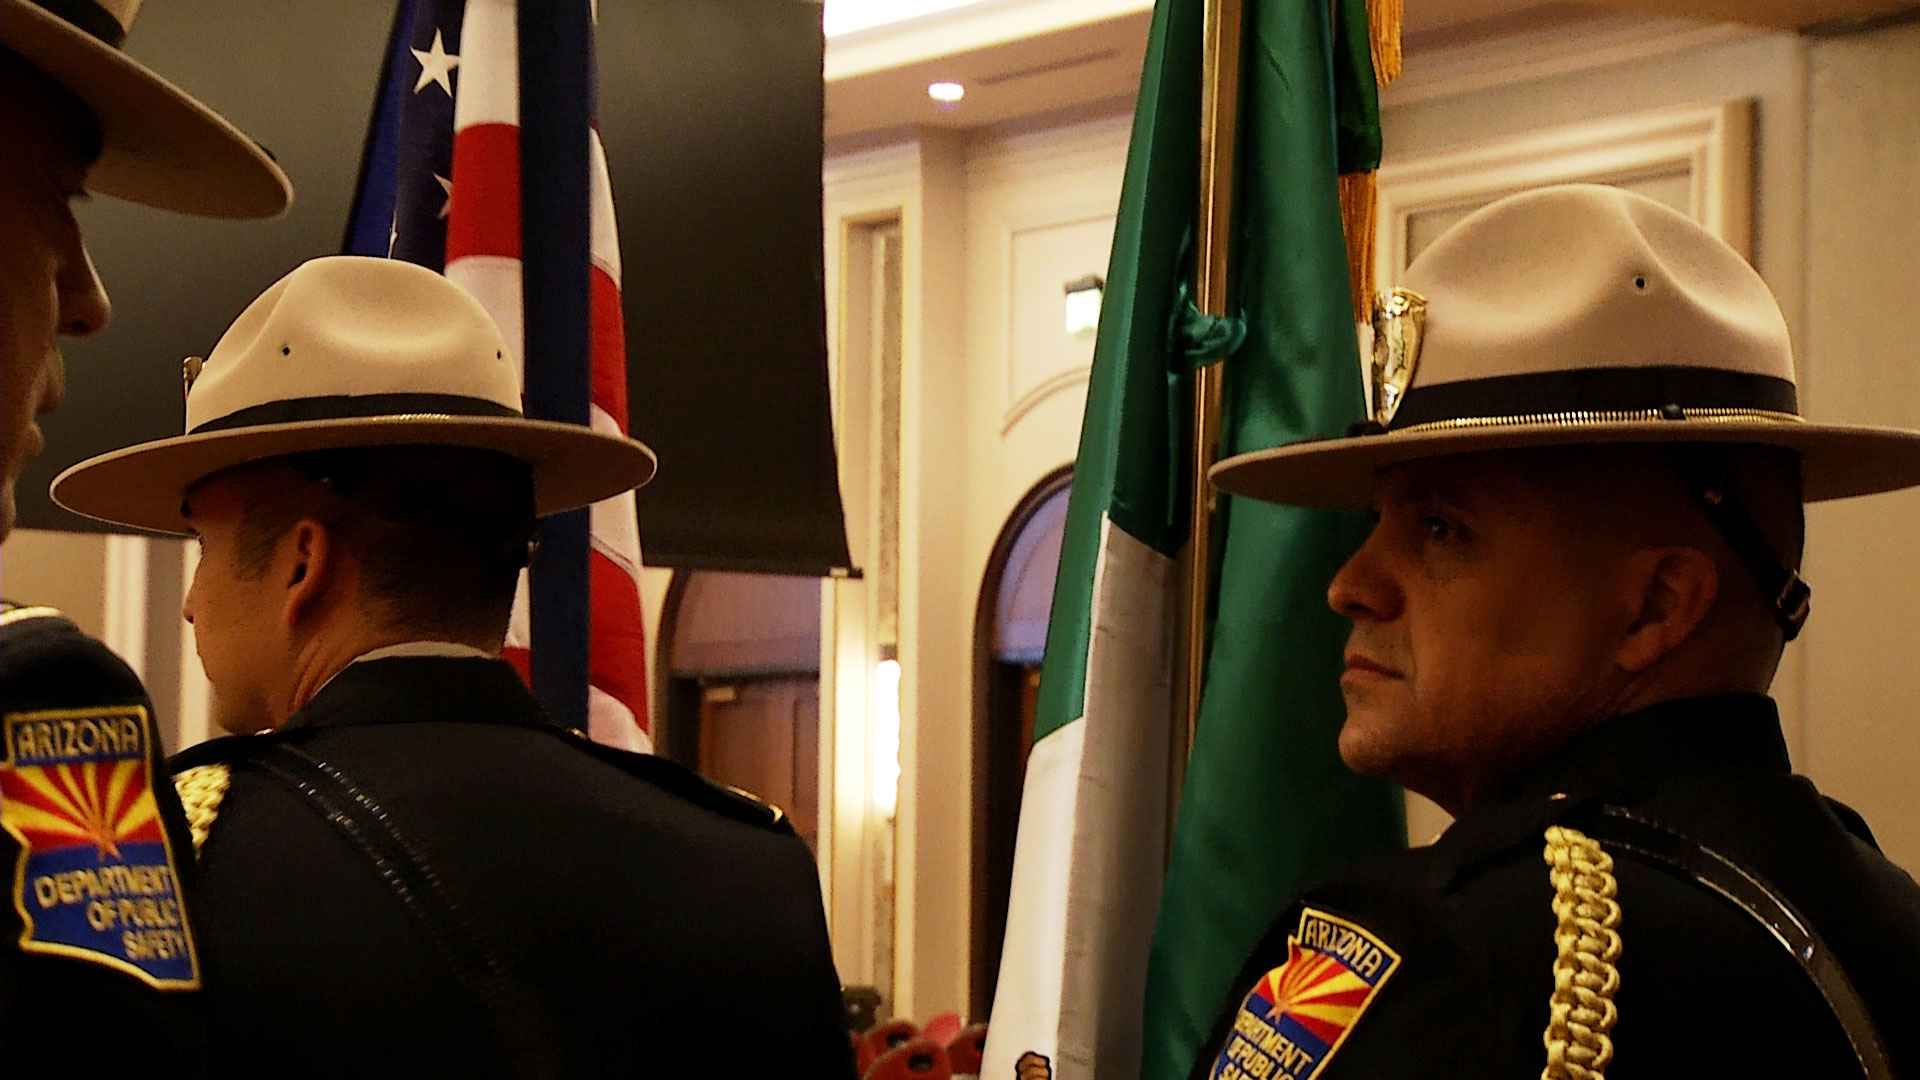 Members of the Arizona Department of Public Safety's Honor Guard stand with United States and Mexican flags at the annual PISA conference held at Casino Del Sol in Tucson on June 19, 2019. The event brings together law enforcement agencies in Arizona and Sonora, Mexico.